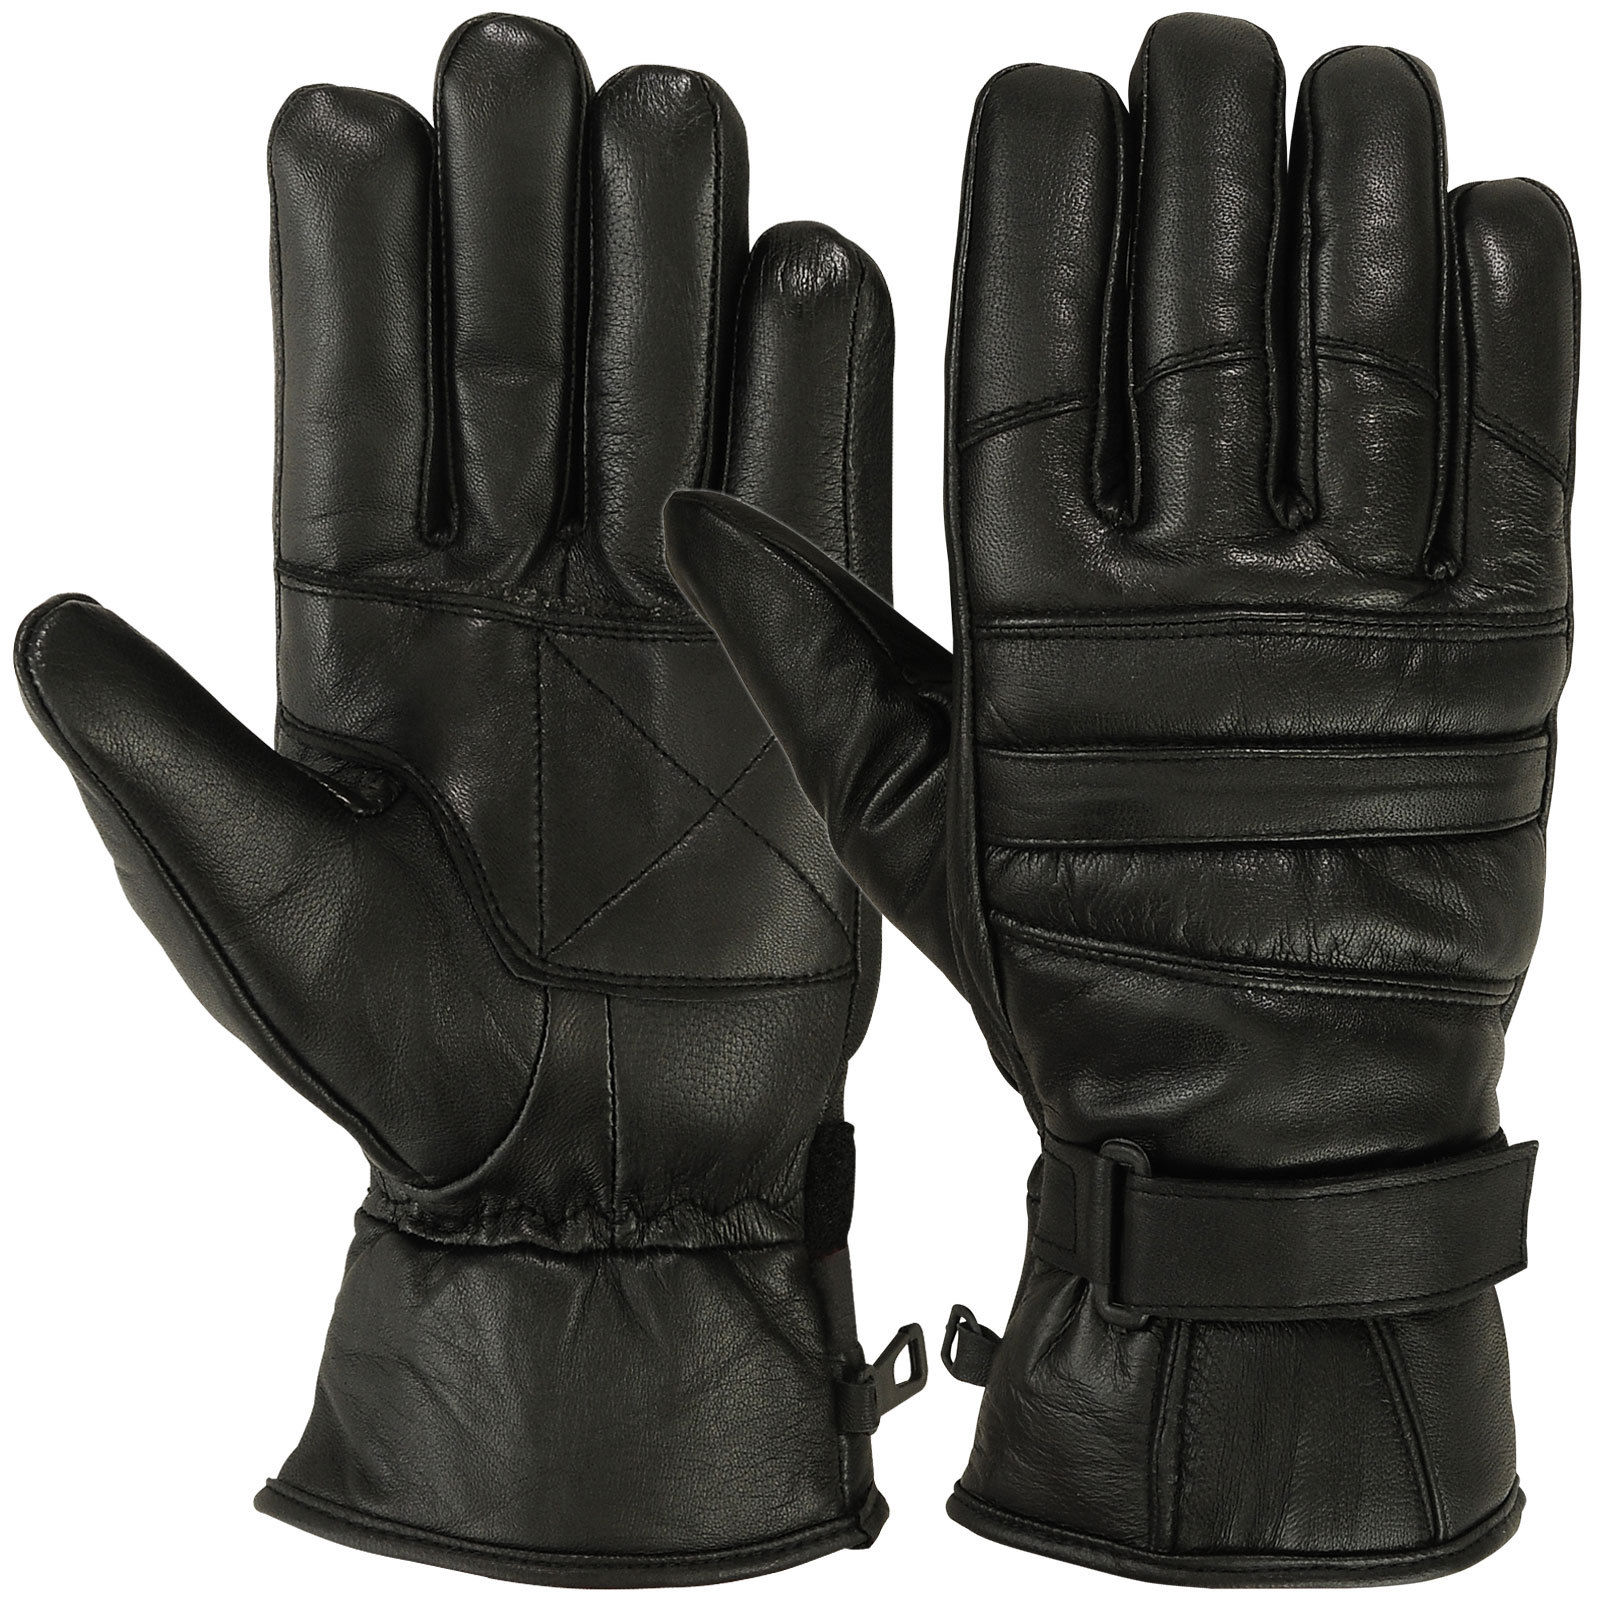 Mens Warm Winter Dress Glove Genuine Leather Motorcycle Gloves, Black (Large)